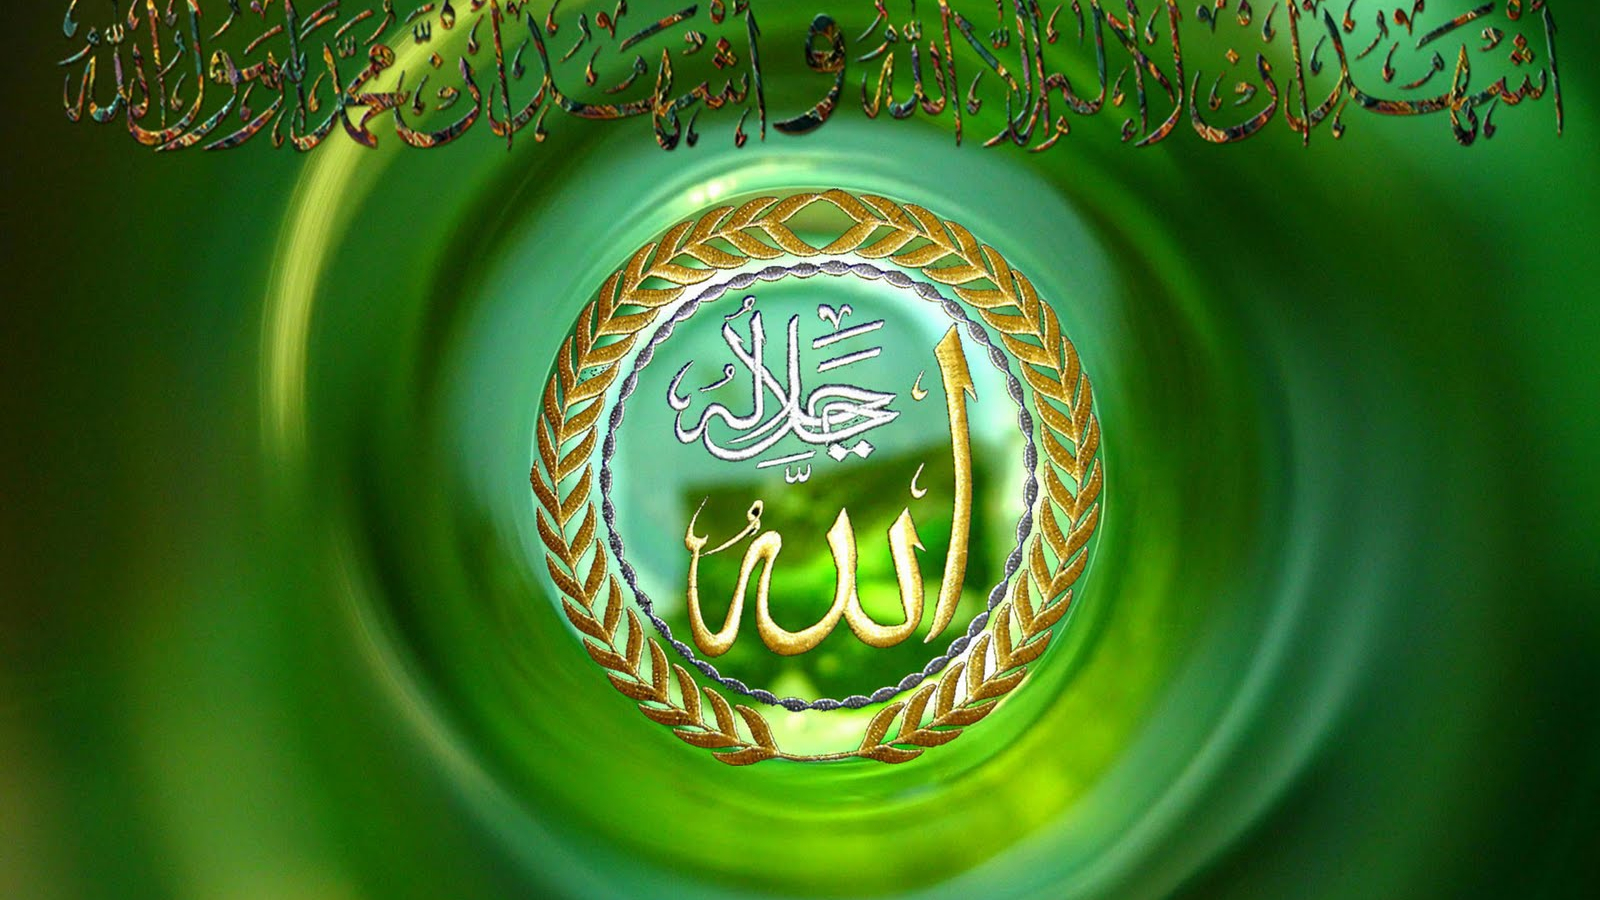 Free Download Gambar Kaligrafi Allah 1600x1000 For Your Desktop Mobile Tablet Explore 50 Kaligrafi Islam Wallpaper Kaligrafi Islam Wallpaper Wallpaper Islam Islam Wallpaper